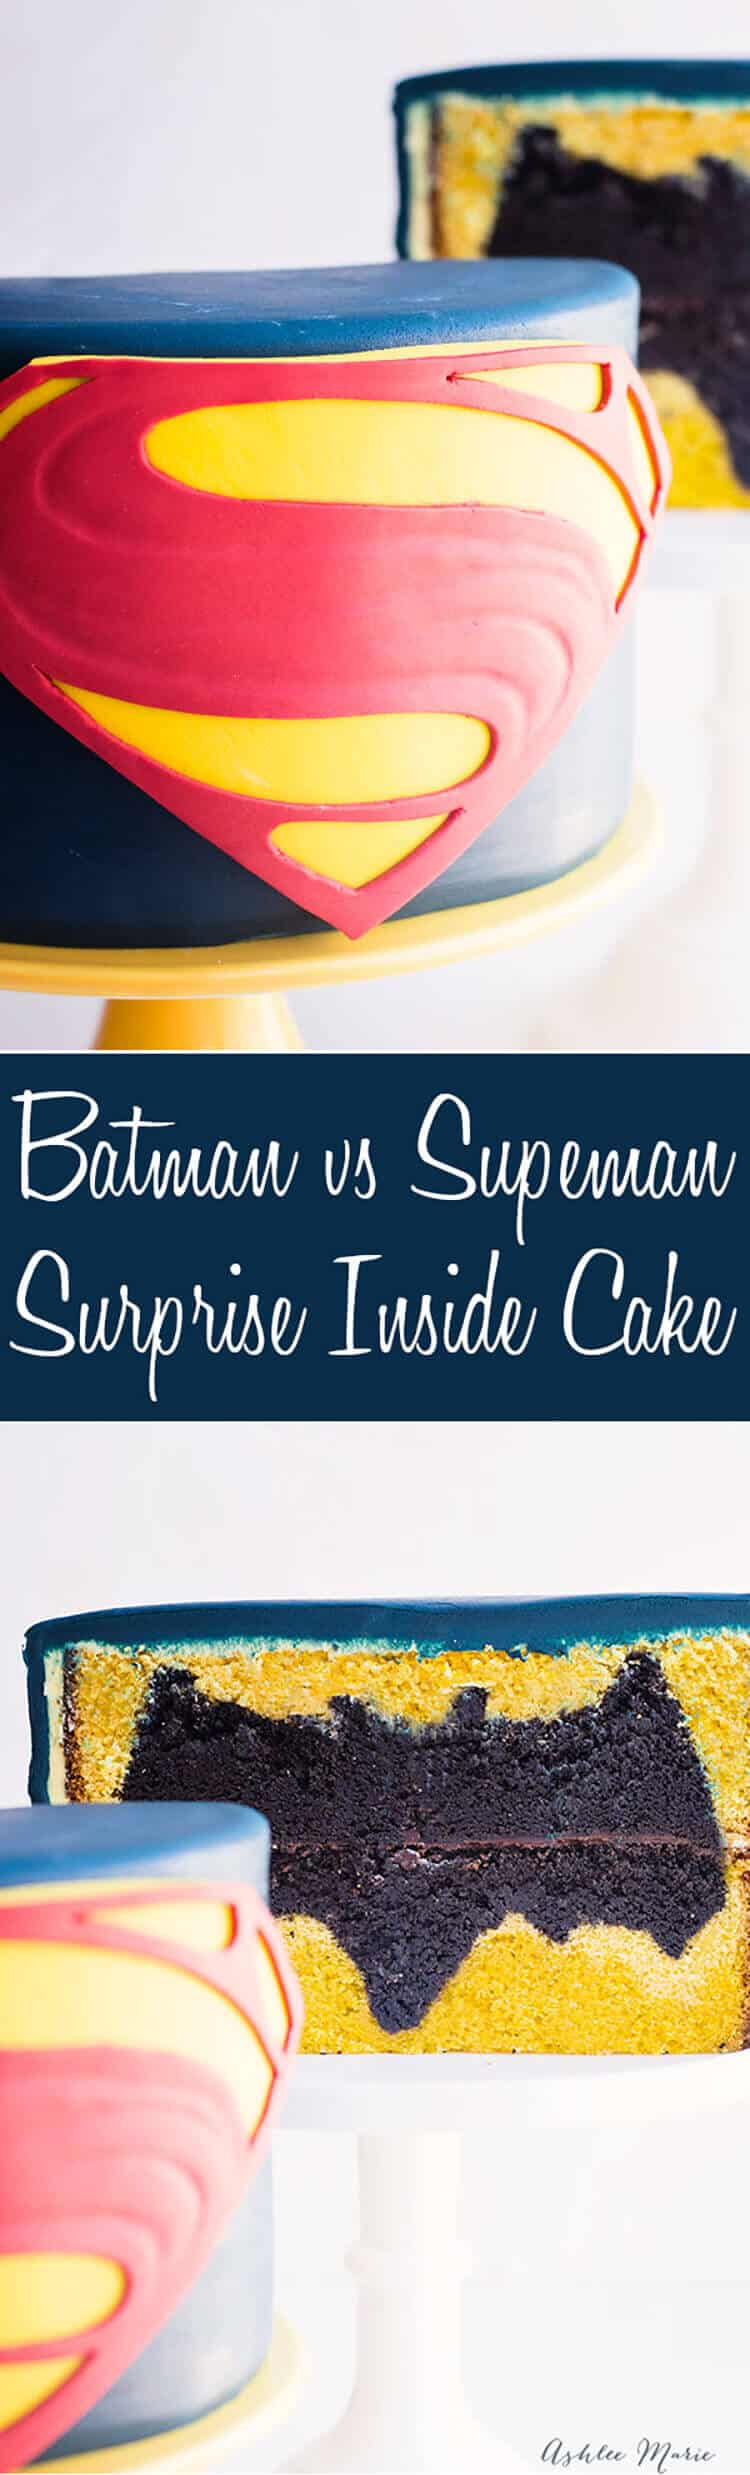 a video tutorial for creating your own batman vs superman movie surprise inside cake